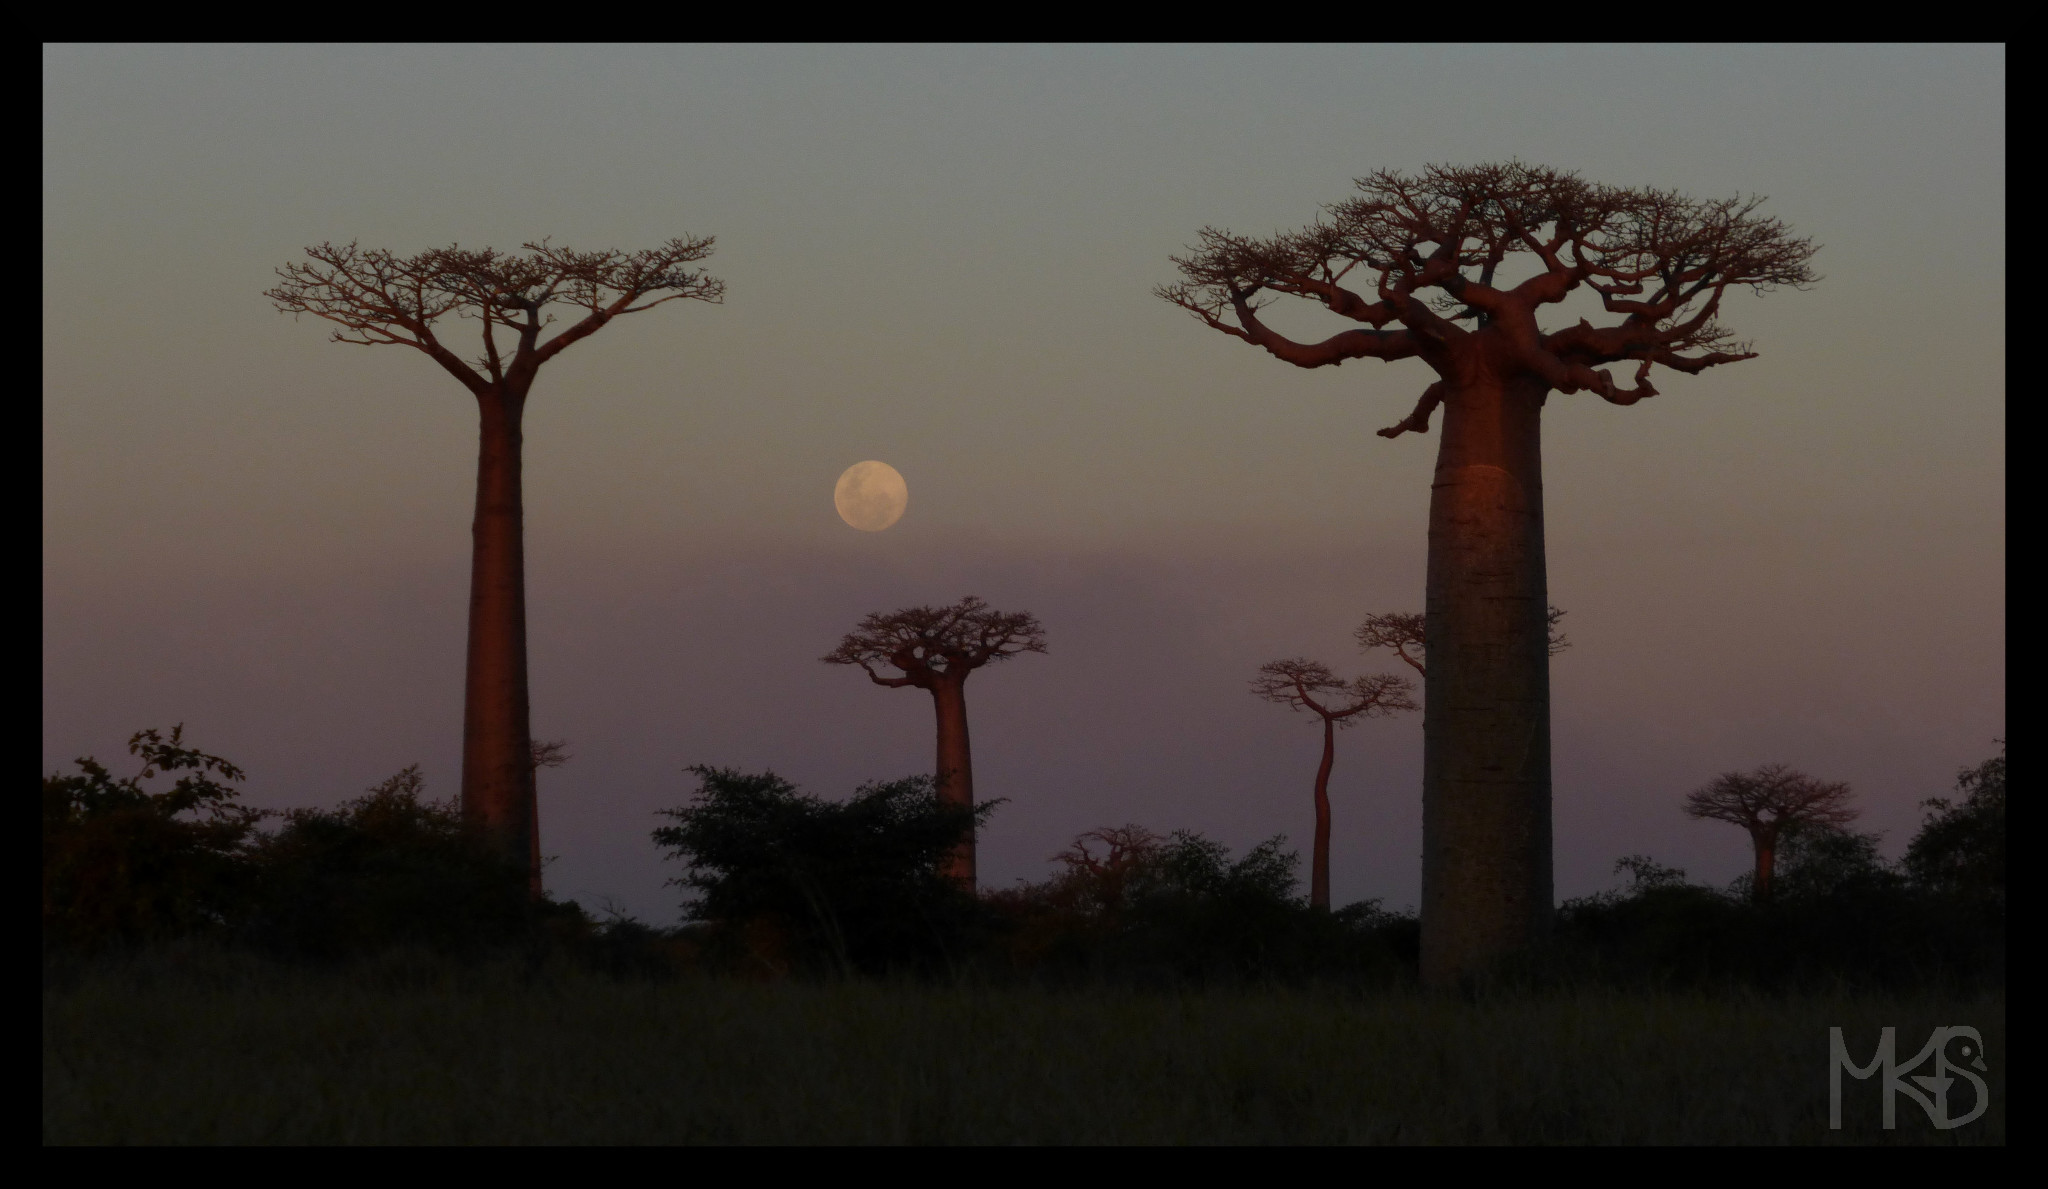 Baobab trees and the Moon